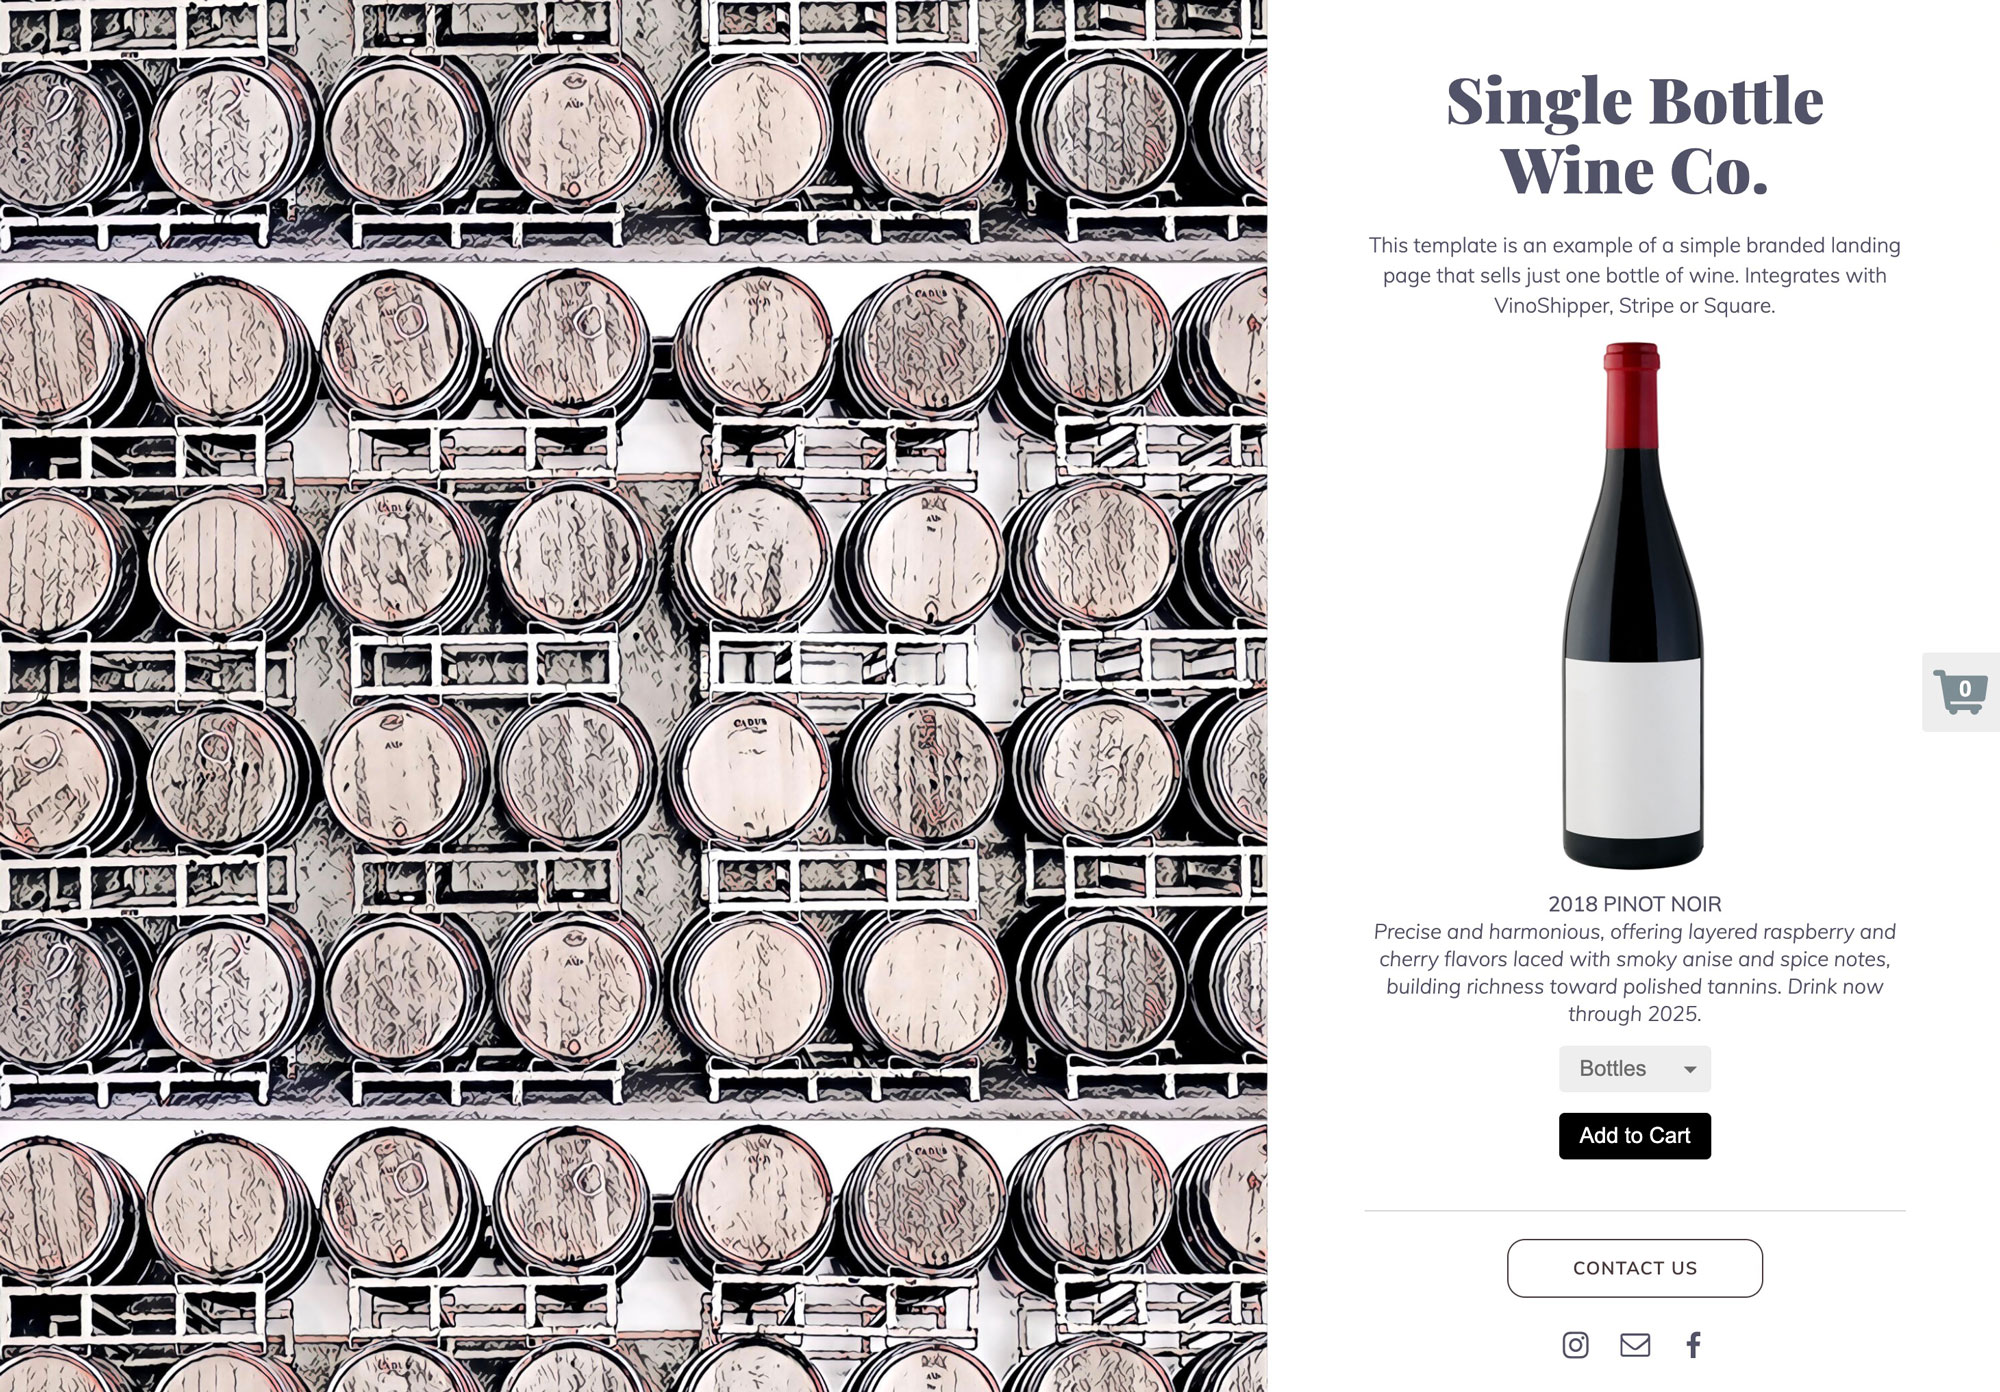 Single Bottle Wine Co. sample microsite